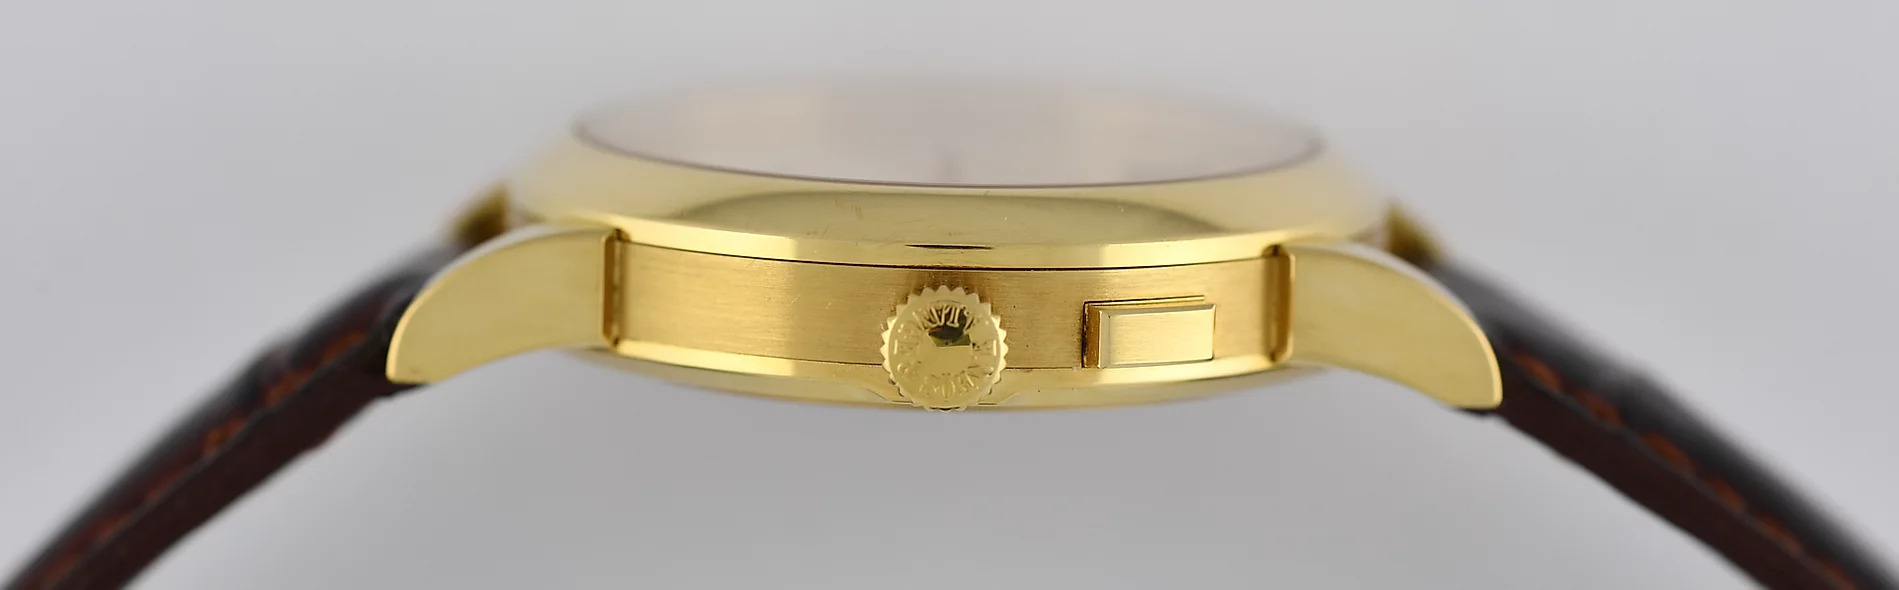 A Lange söhne Saxonia big date yellow gold solid case back 34 mms 102.001 caseband